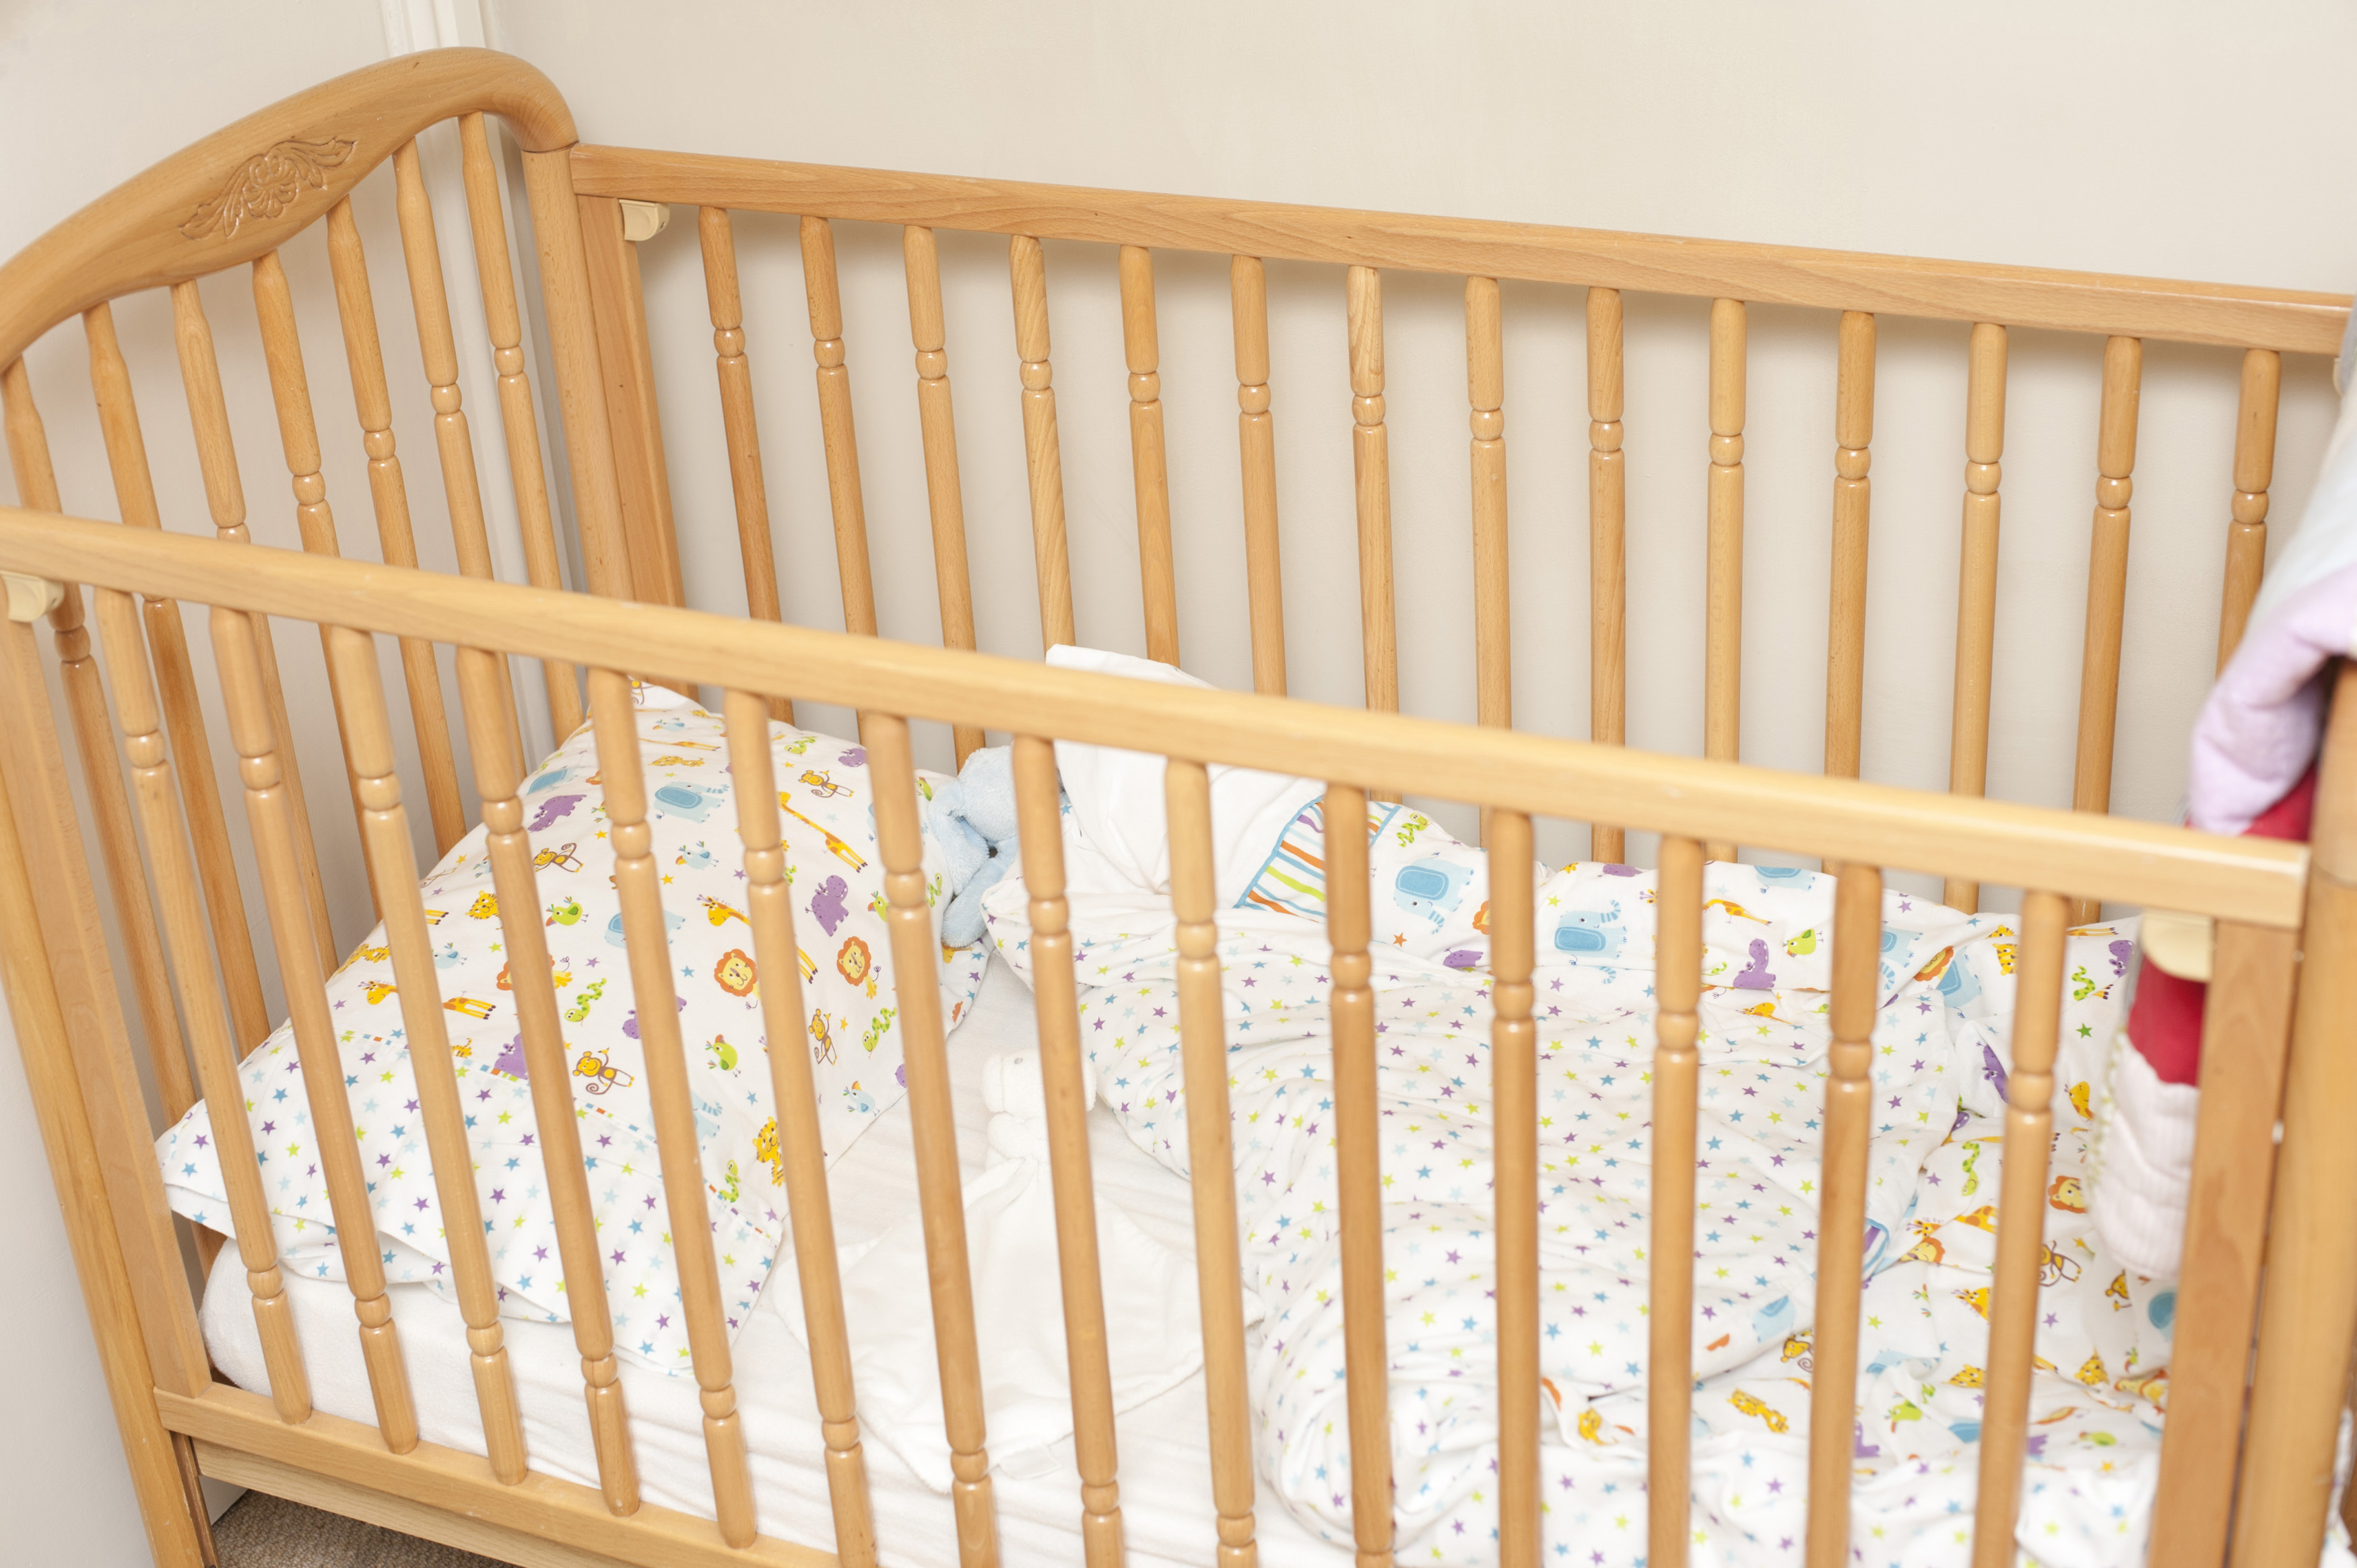 unsafe sleep environment for baby